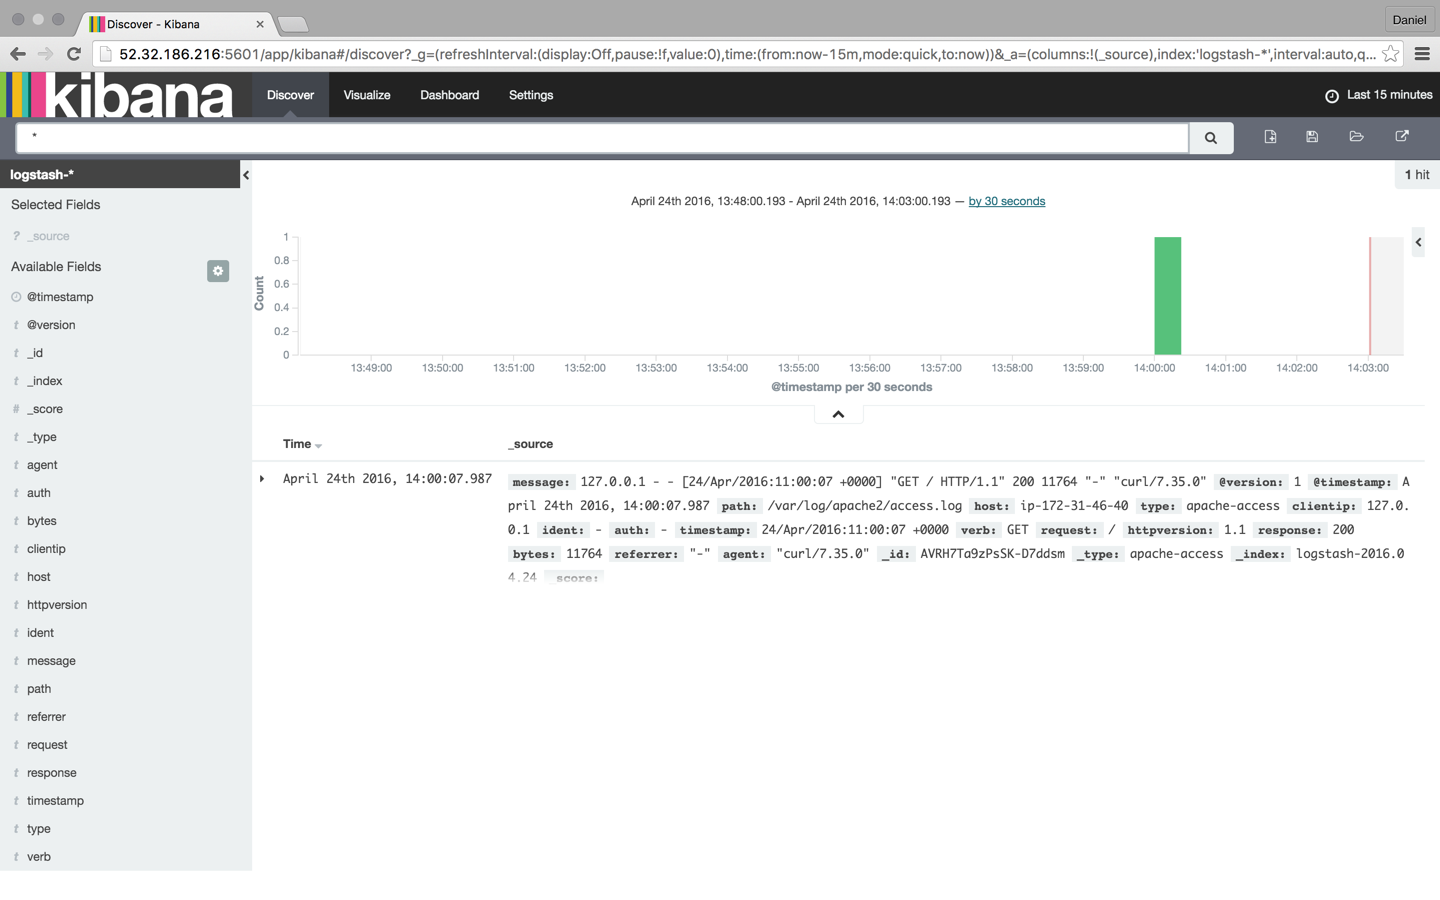 Kibana interface